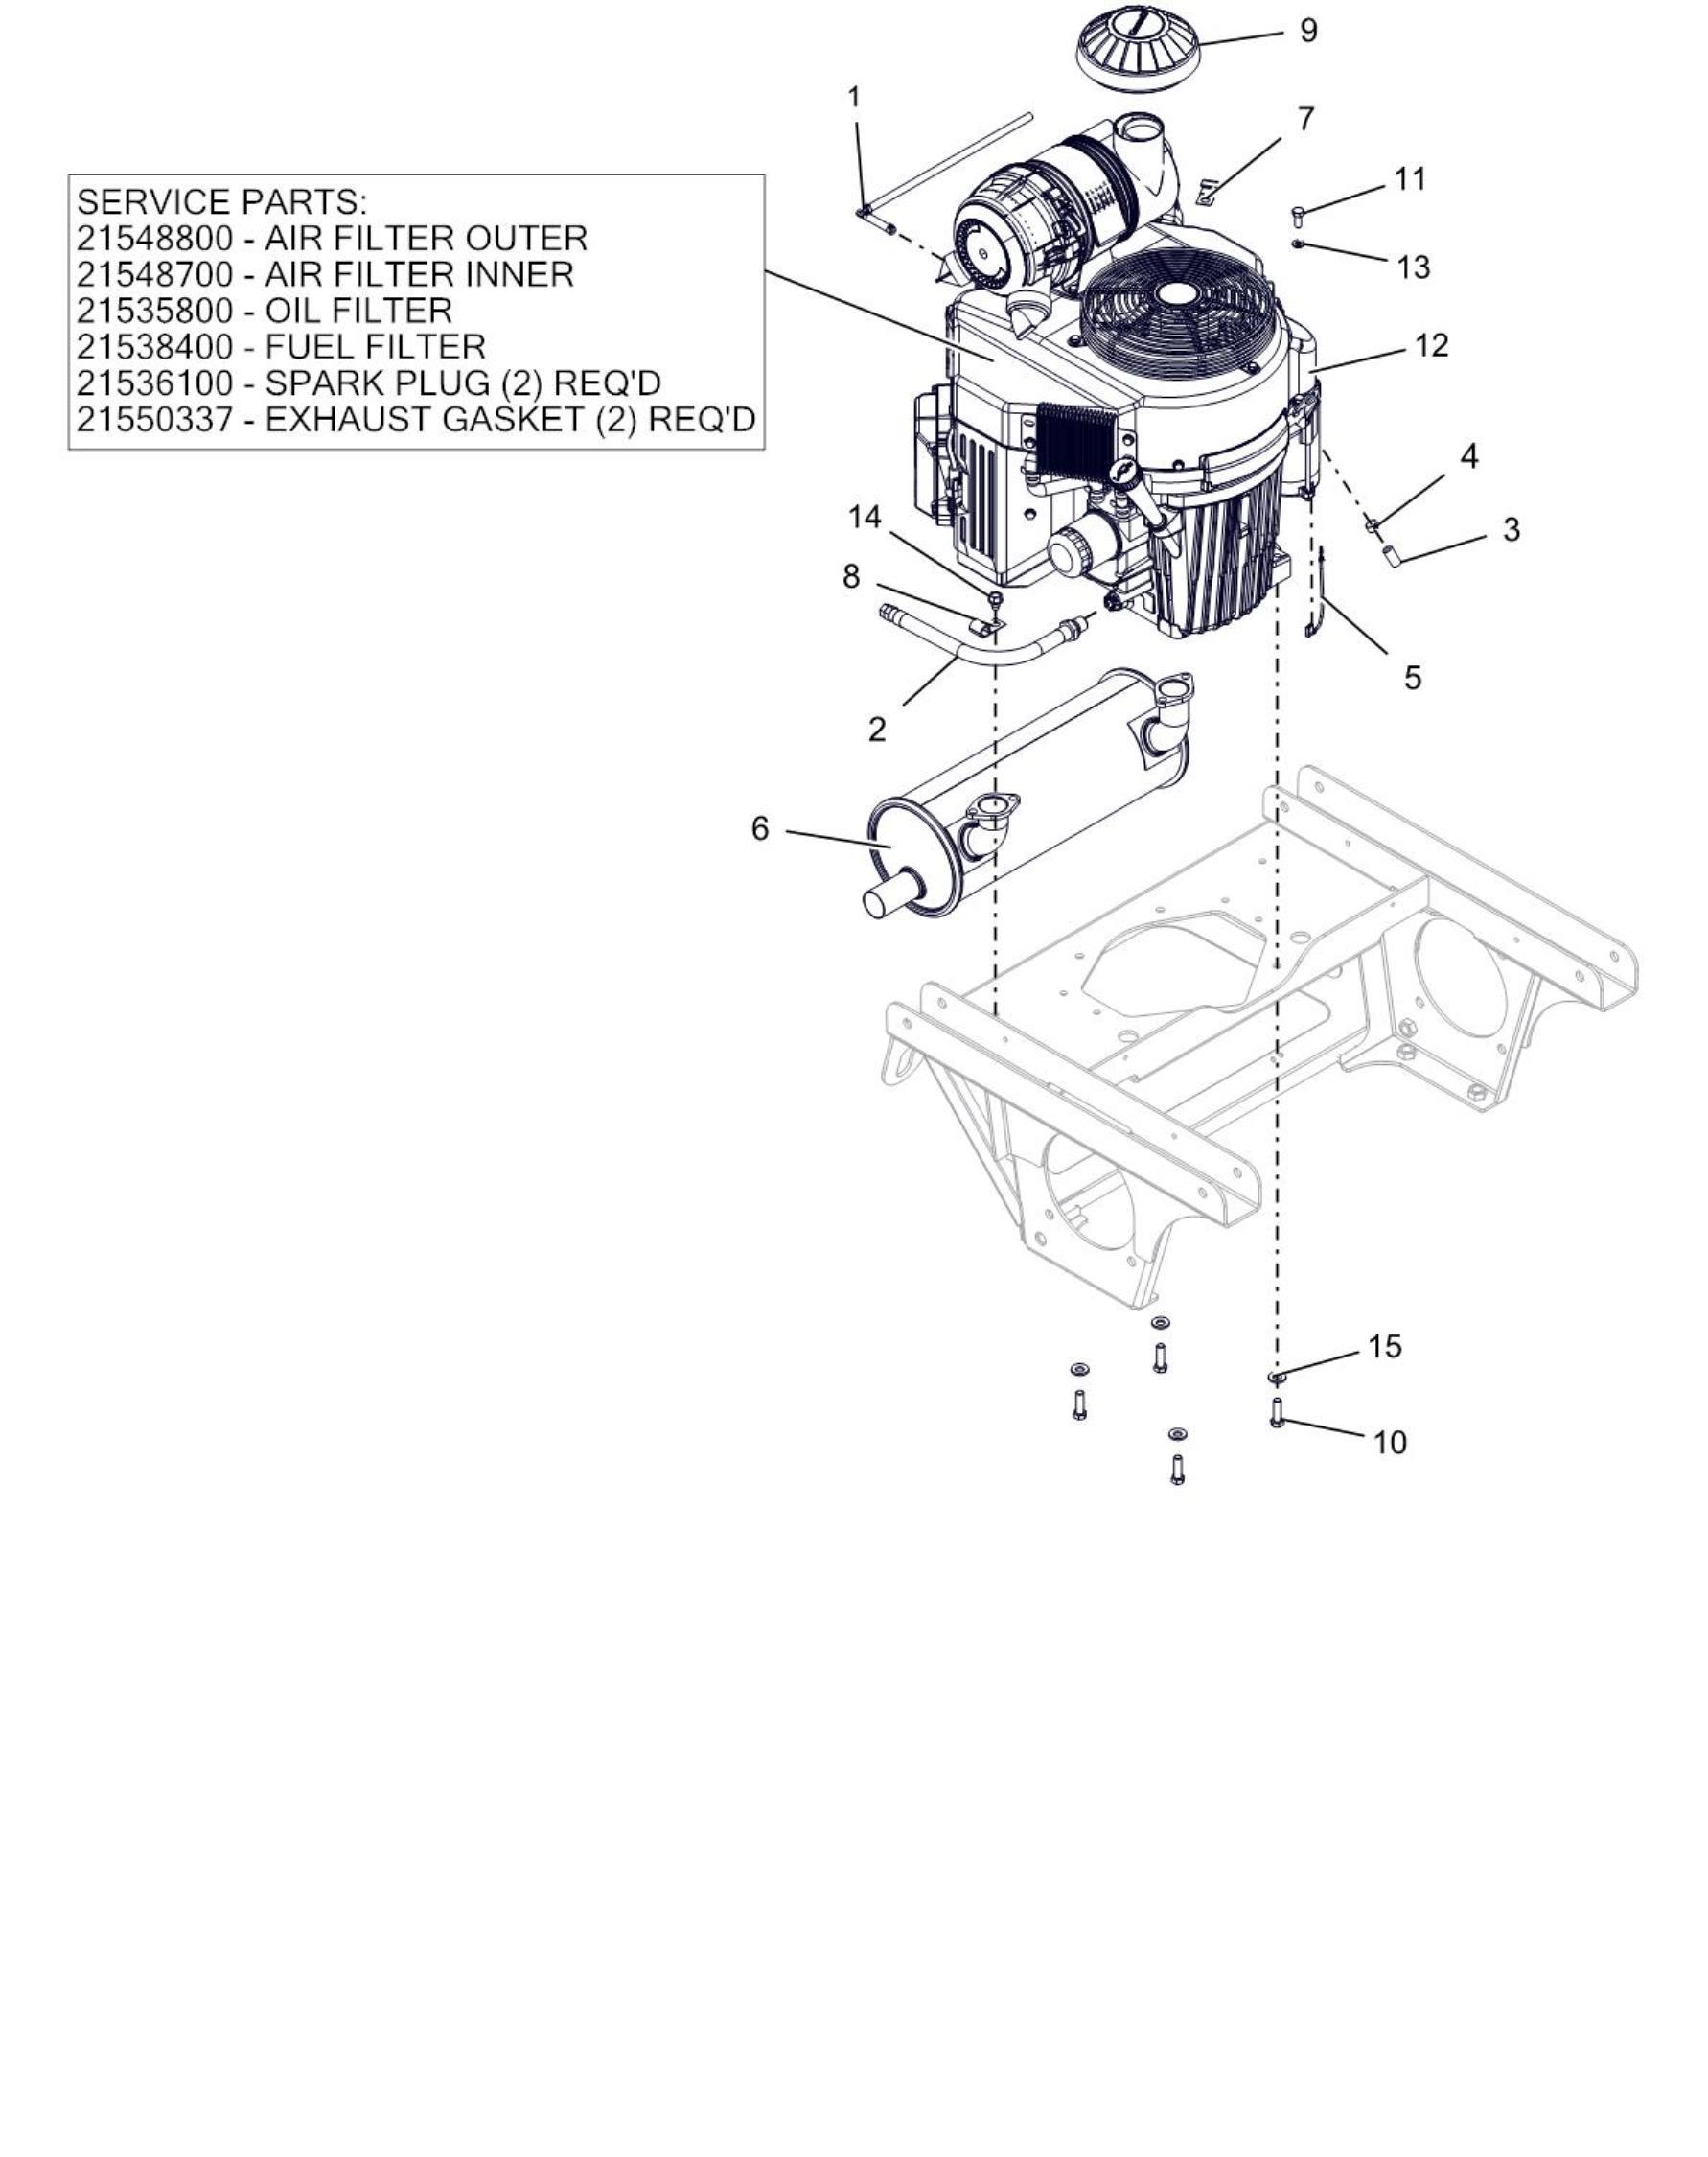 Kawasaki Mule 3010 Fuel Filter | Wiring Diagram Database